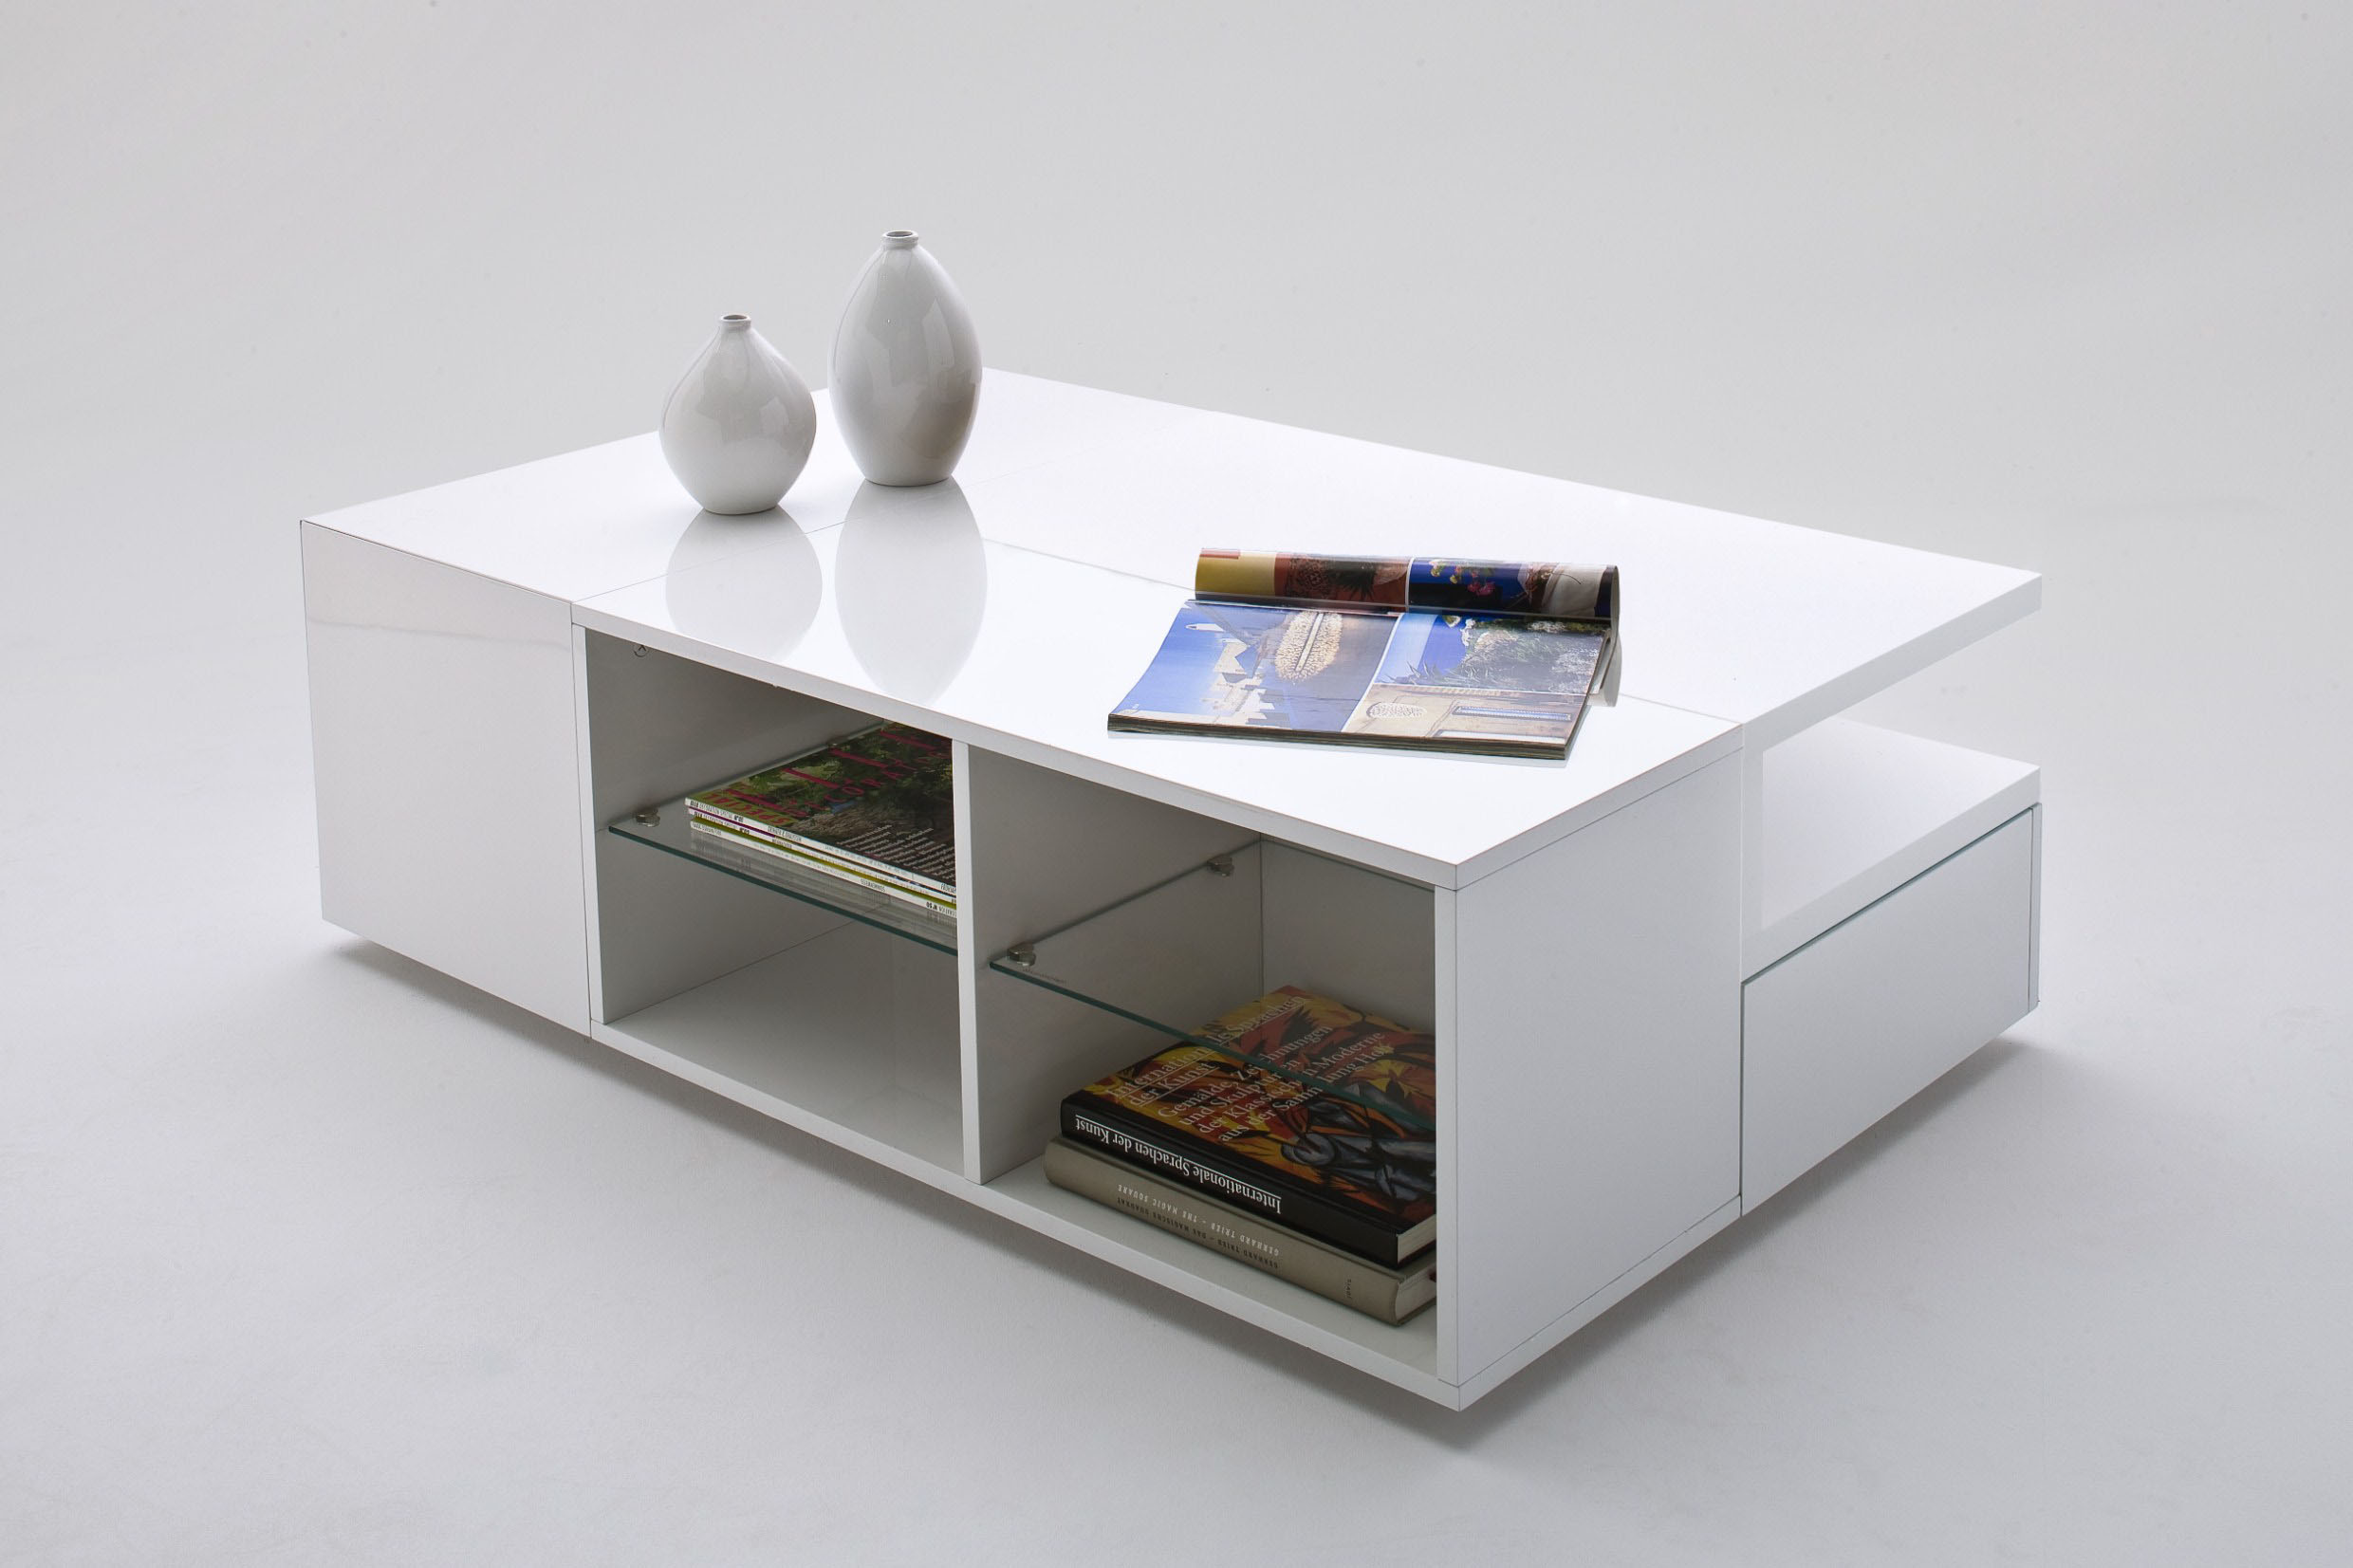 Http Www Ebay Co Uk Itm New Designer Coffee Table Diva With Hidden Storage Space In White High Gloss 110969334520